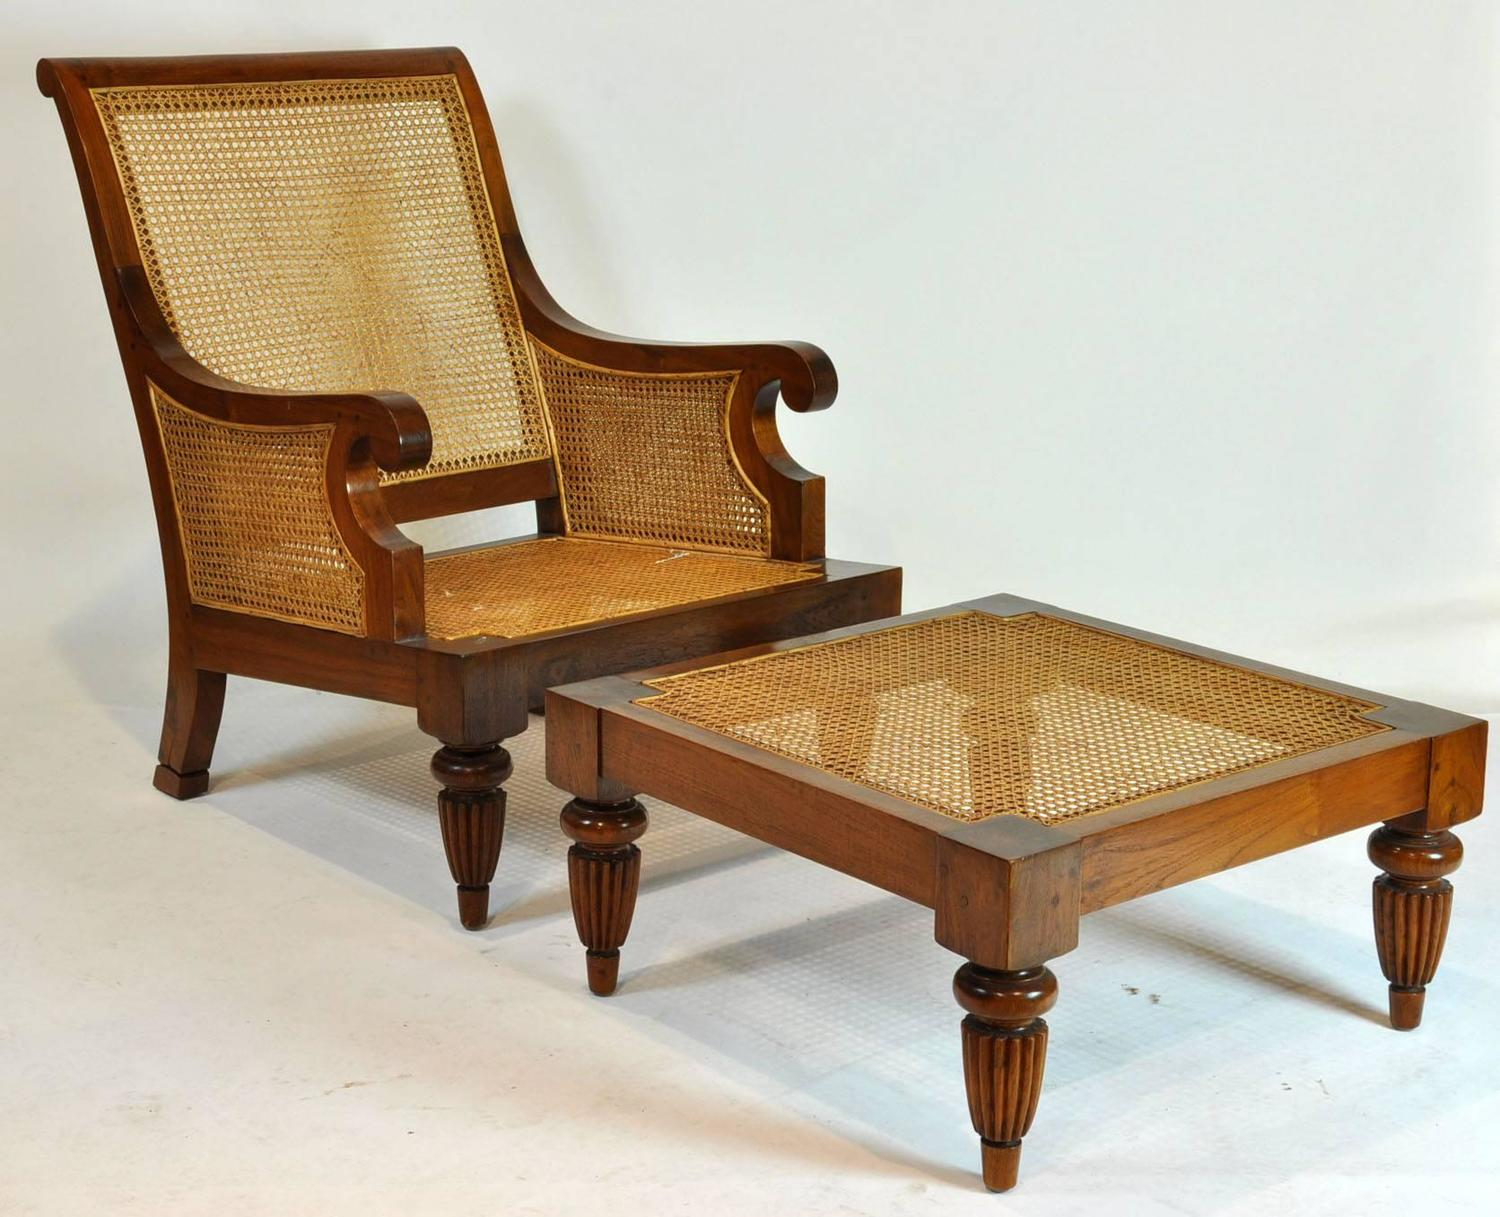 plantation style chairs bedroom chair dublin british colonial imports caned leather